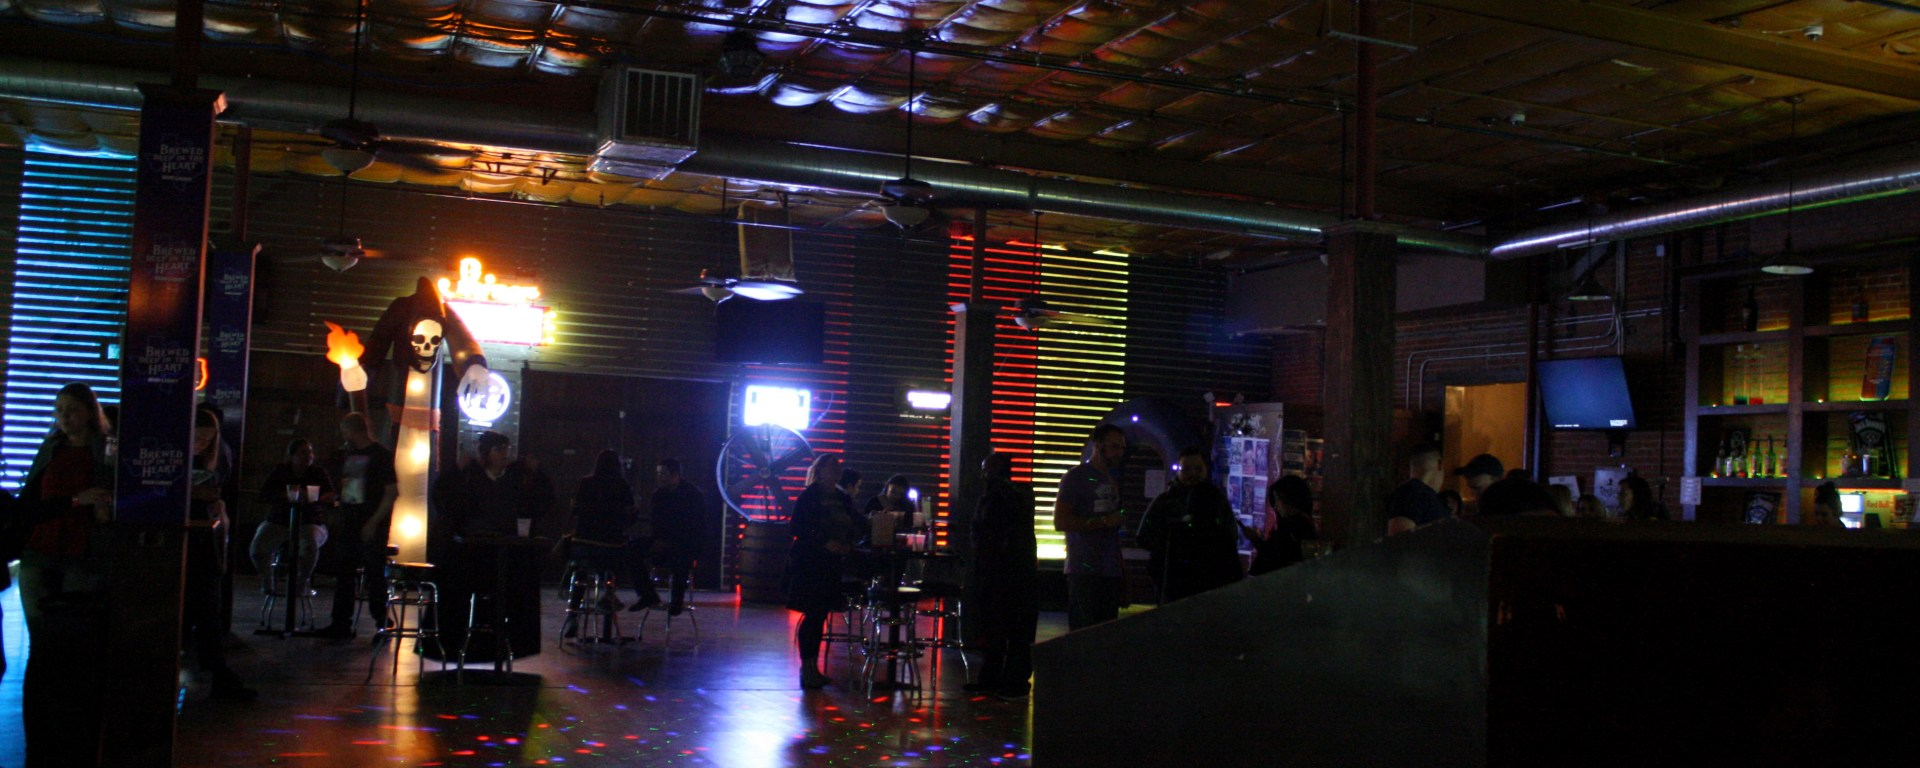 Several people stand around cocktail tables around concert venue space.